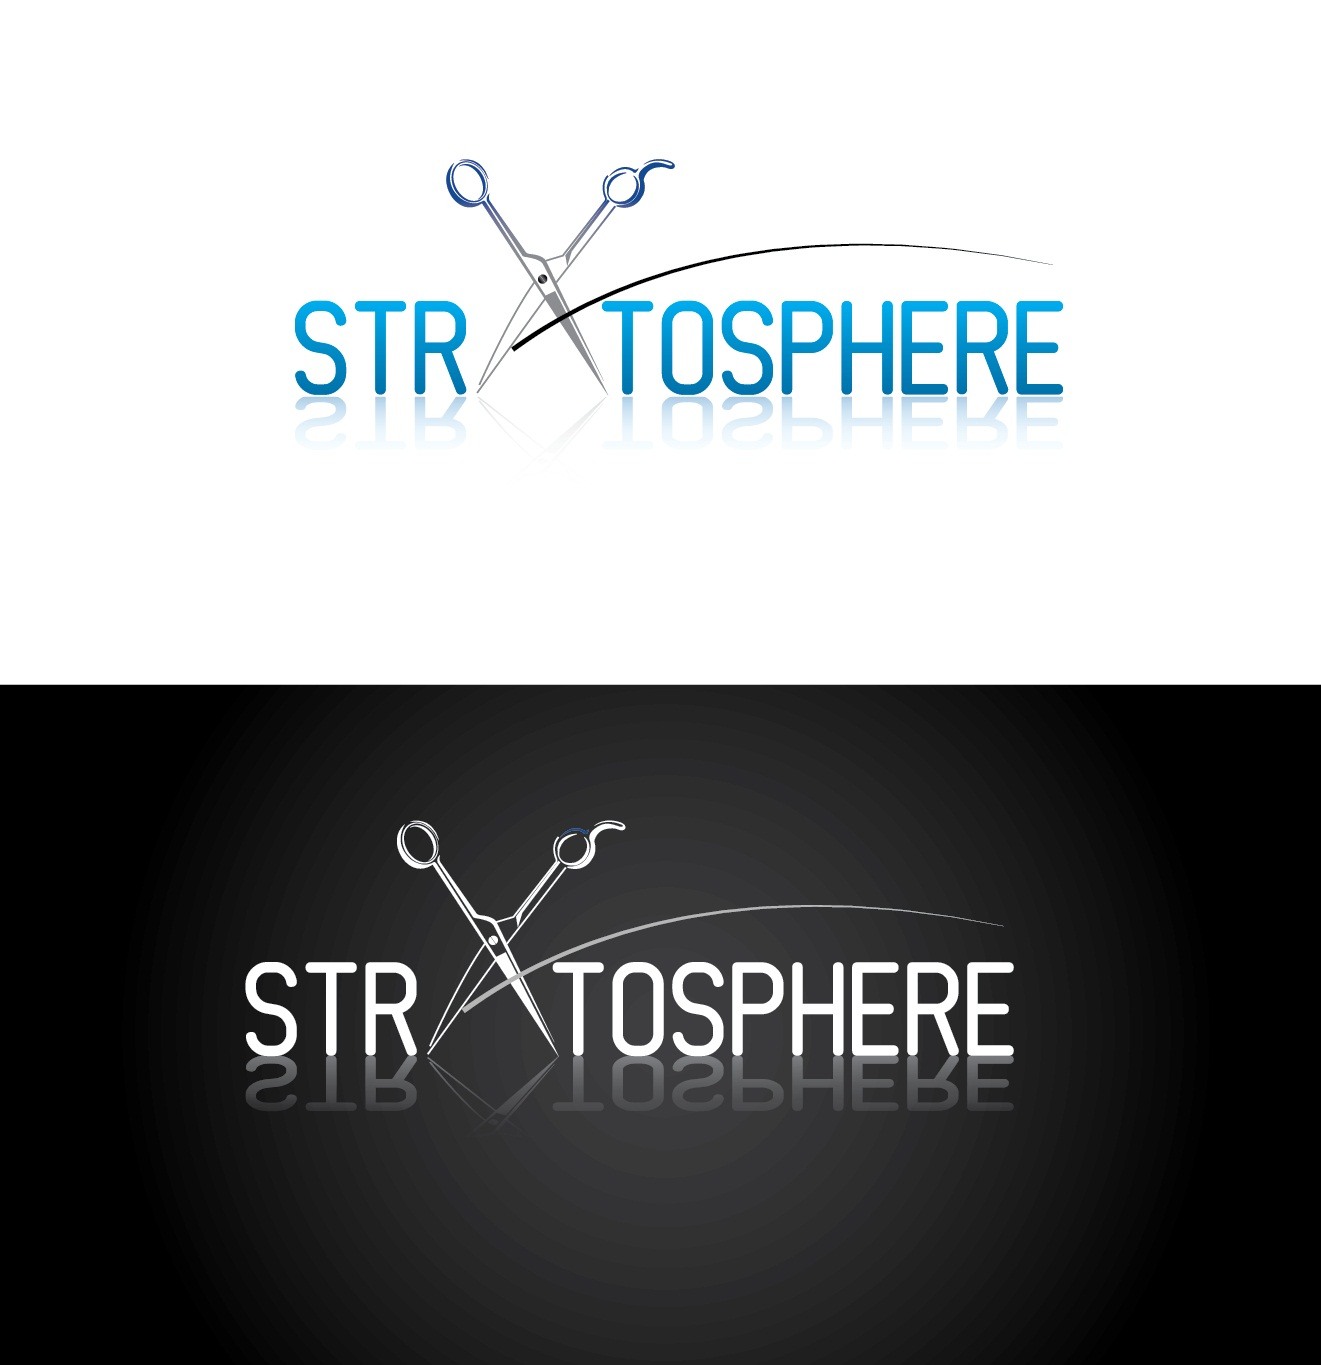 Logo Design by mediaproductionart - Entry No. 18 in the Logo Design Contest Captivating Logo Design for Stratosphere.